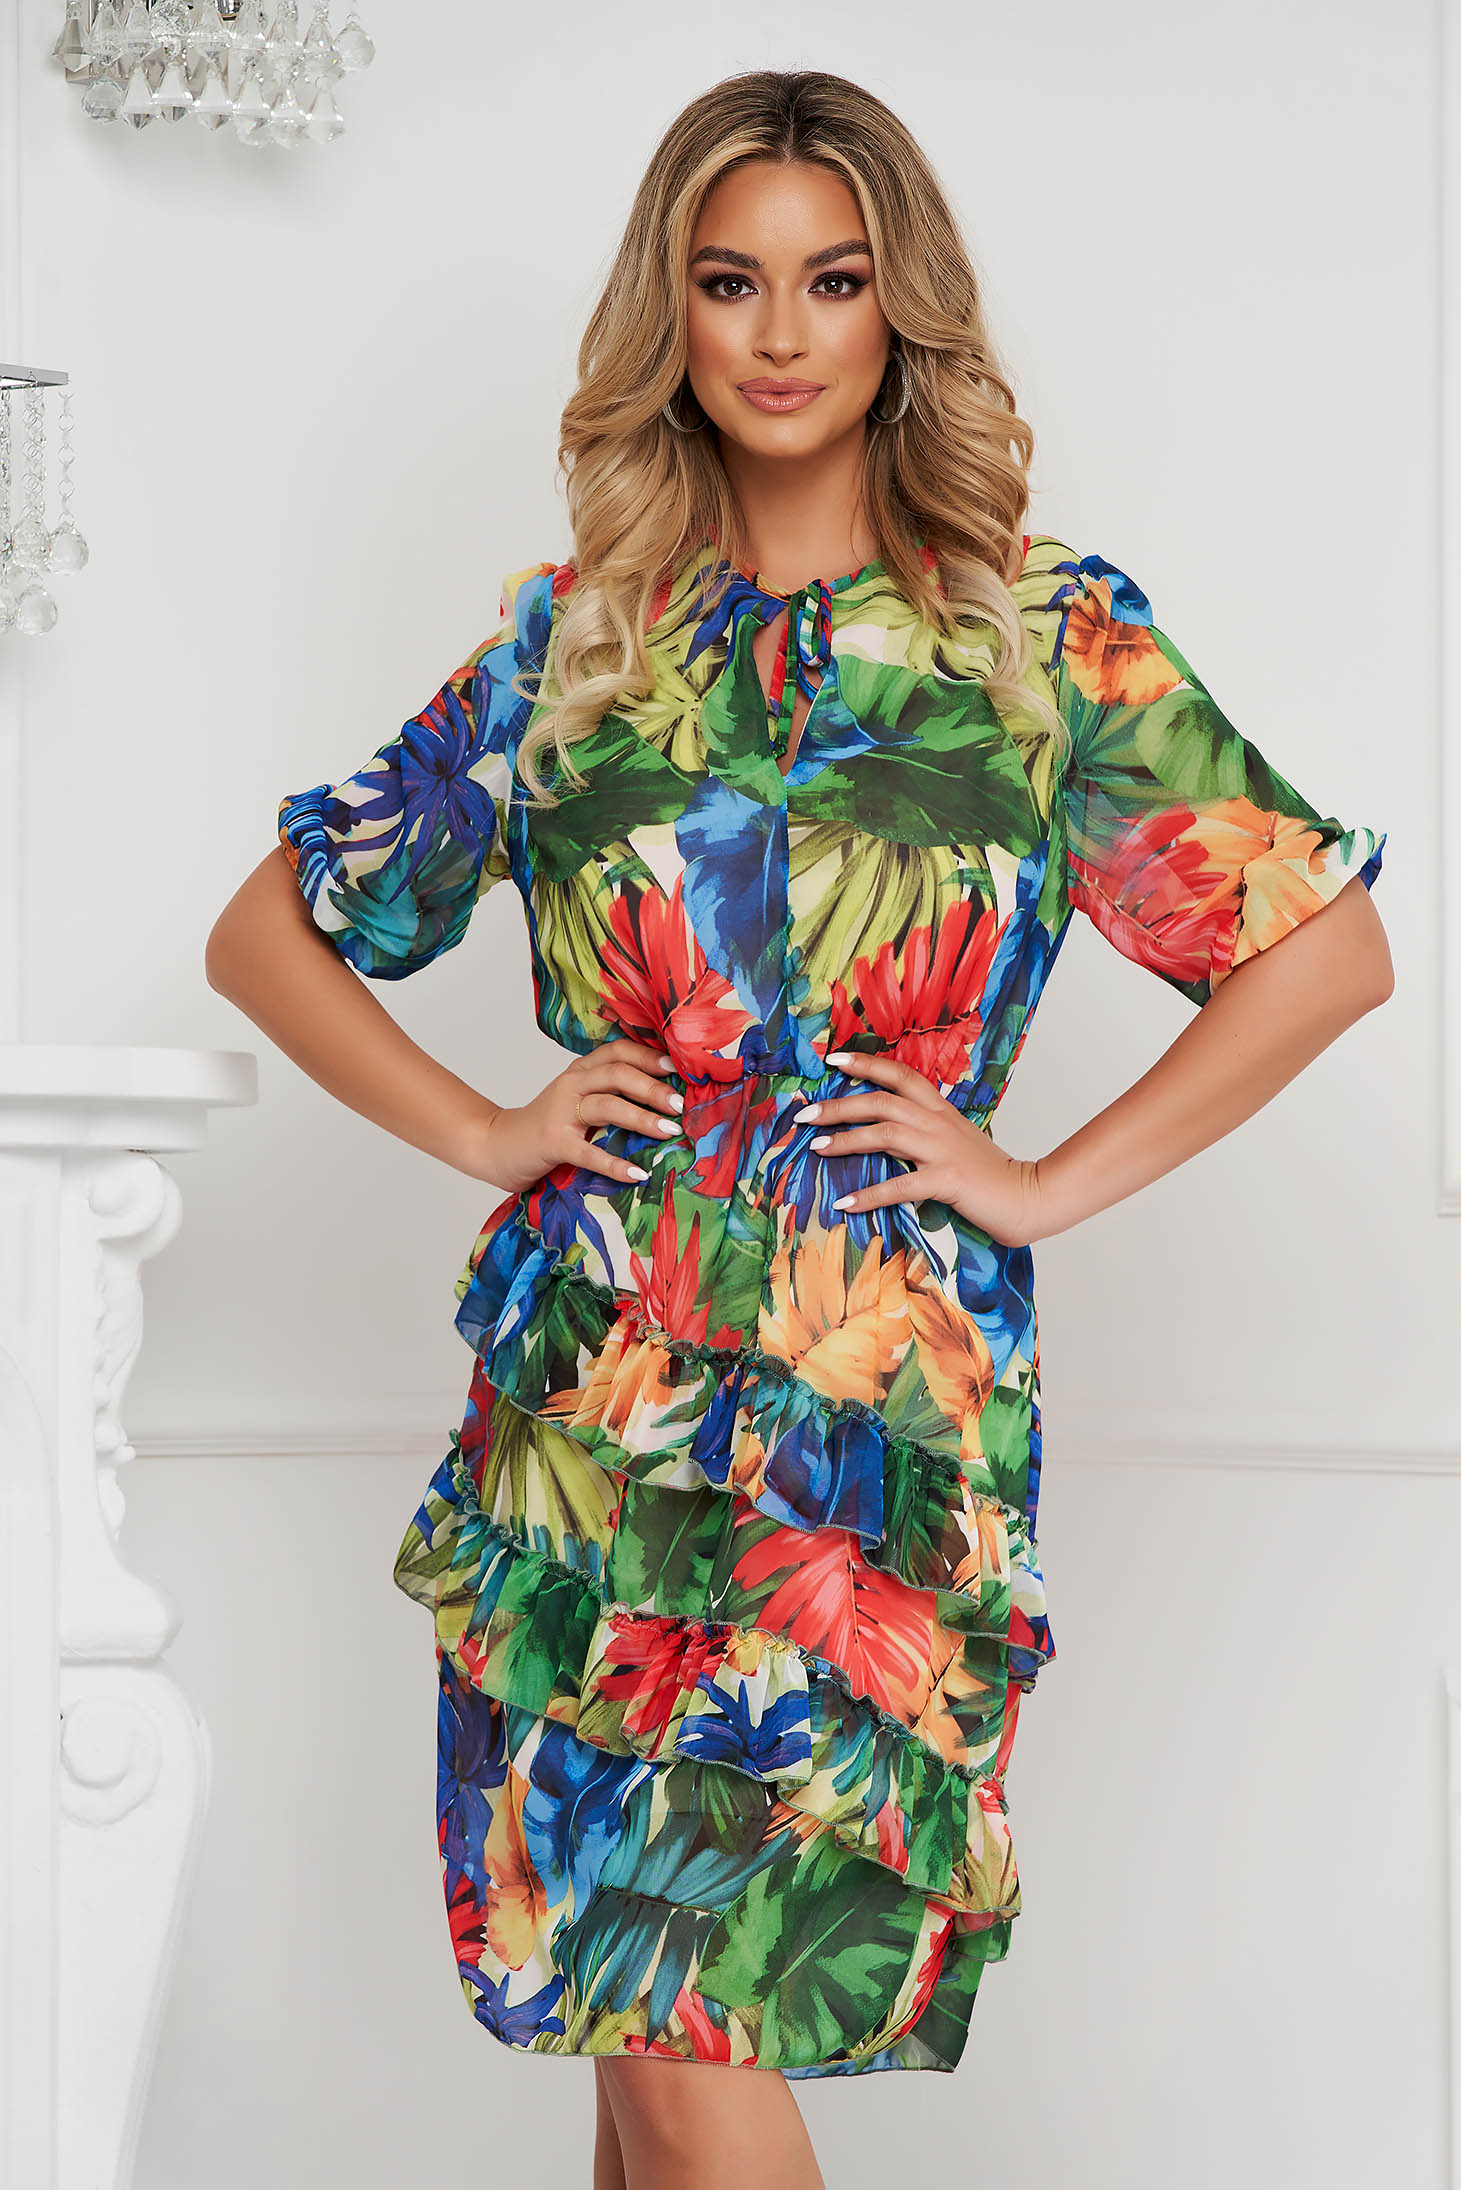 StarShinerS dress midi from veil fabric with ruffle details with floral print